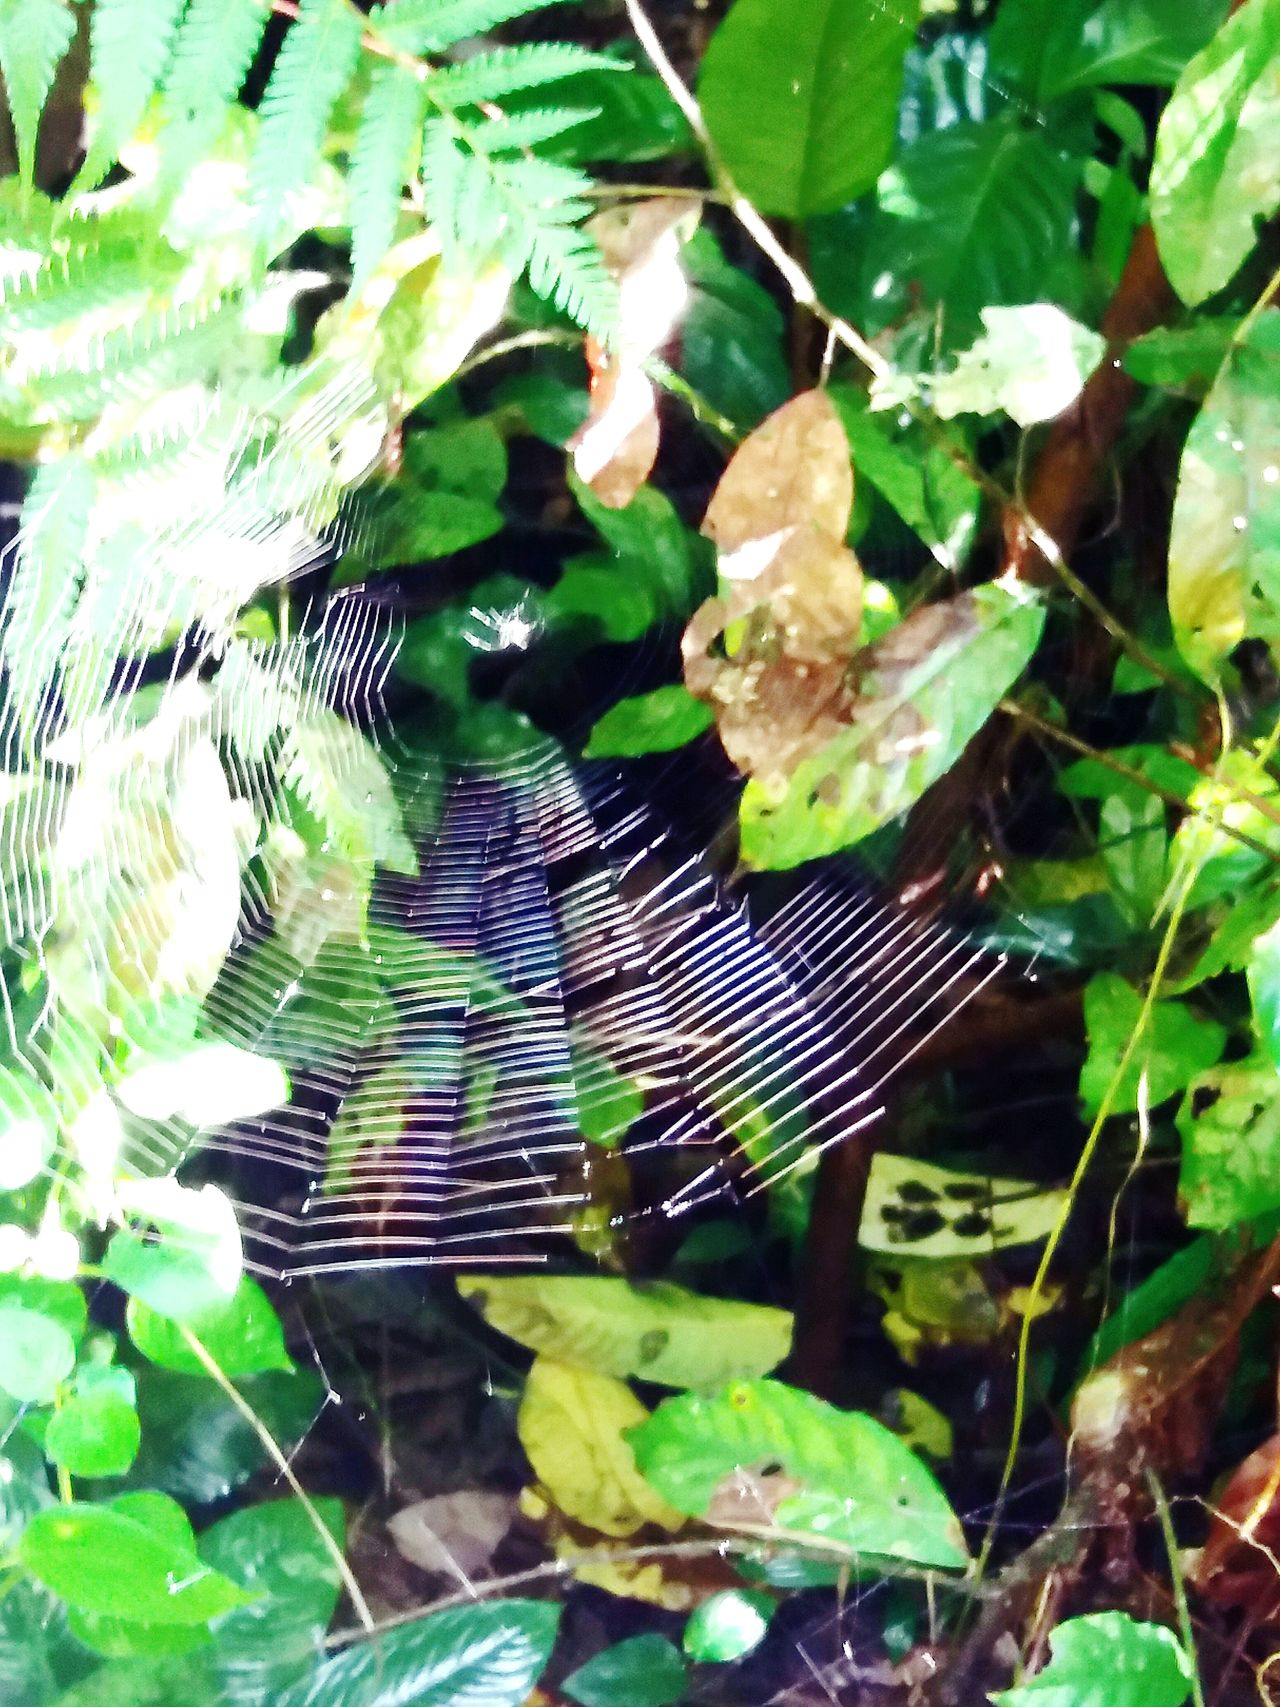 Nature Close-up Spider Web Animal Themes Outdoors Beauty In Nature Animals In The Wild Spider Nature Malaysia EyeEm Nature Lover EyeEm Best Shots - Nature Malaysia Photography Spiderworld